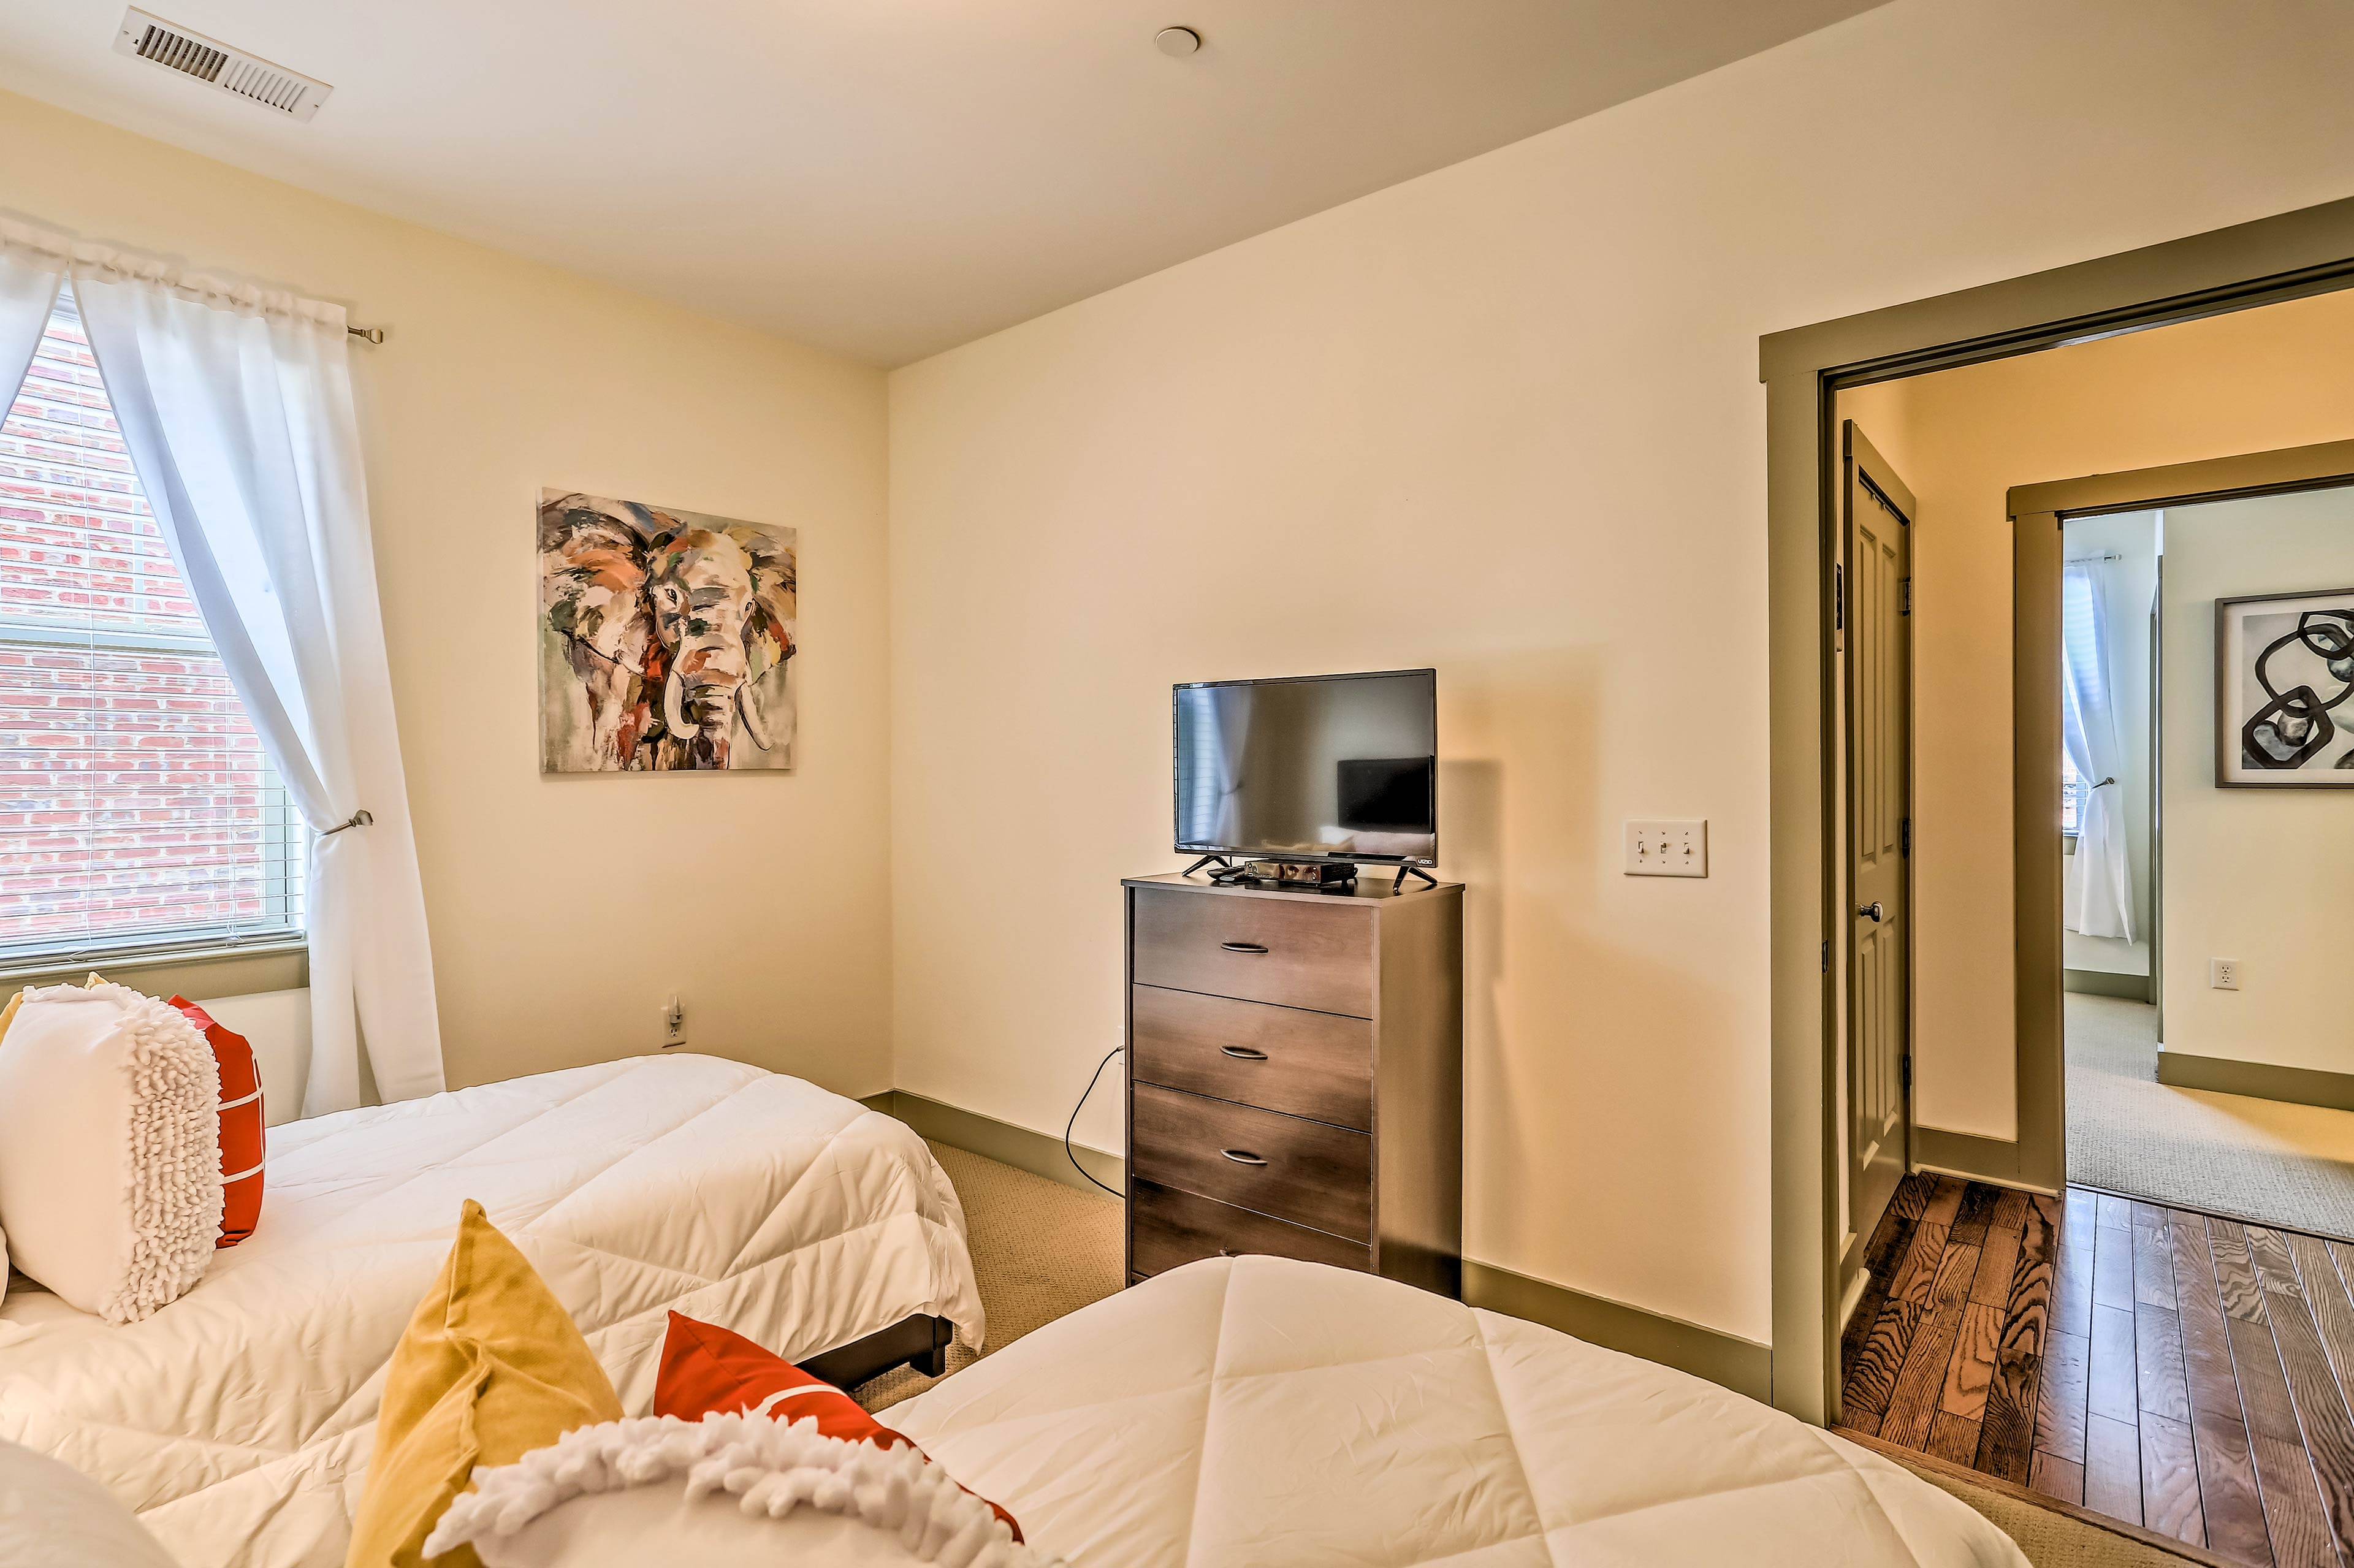 Each bedroom includes a TV!